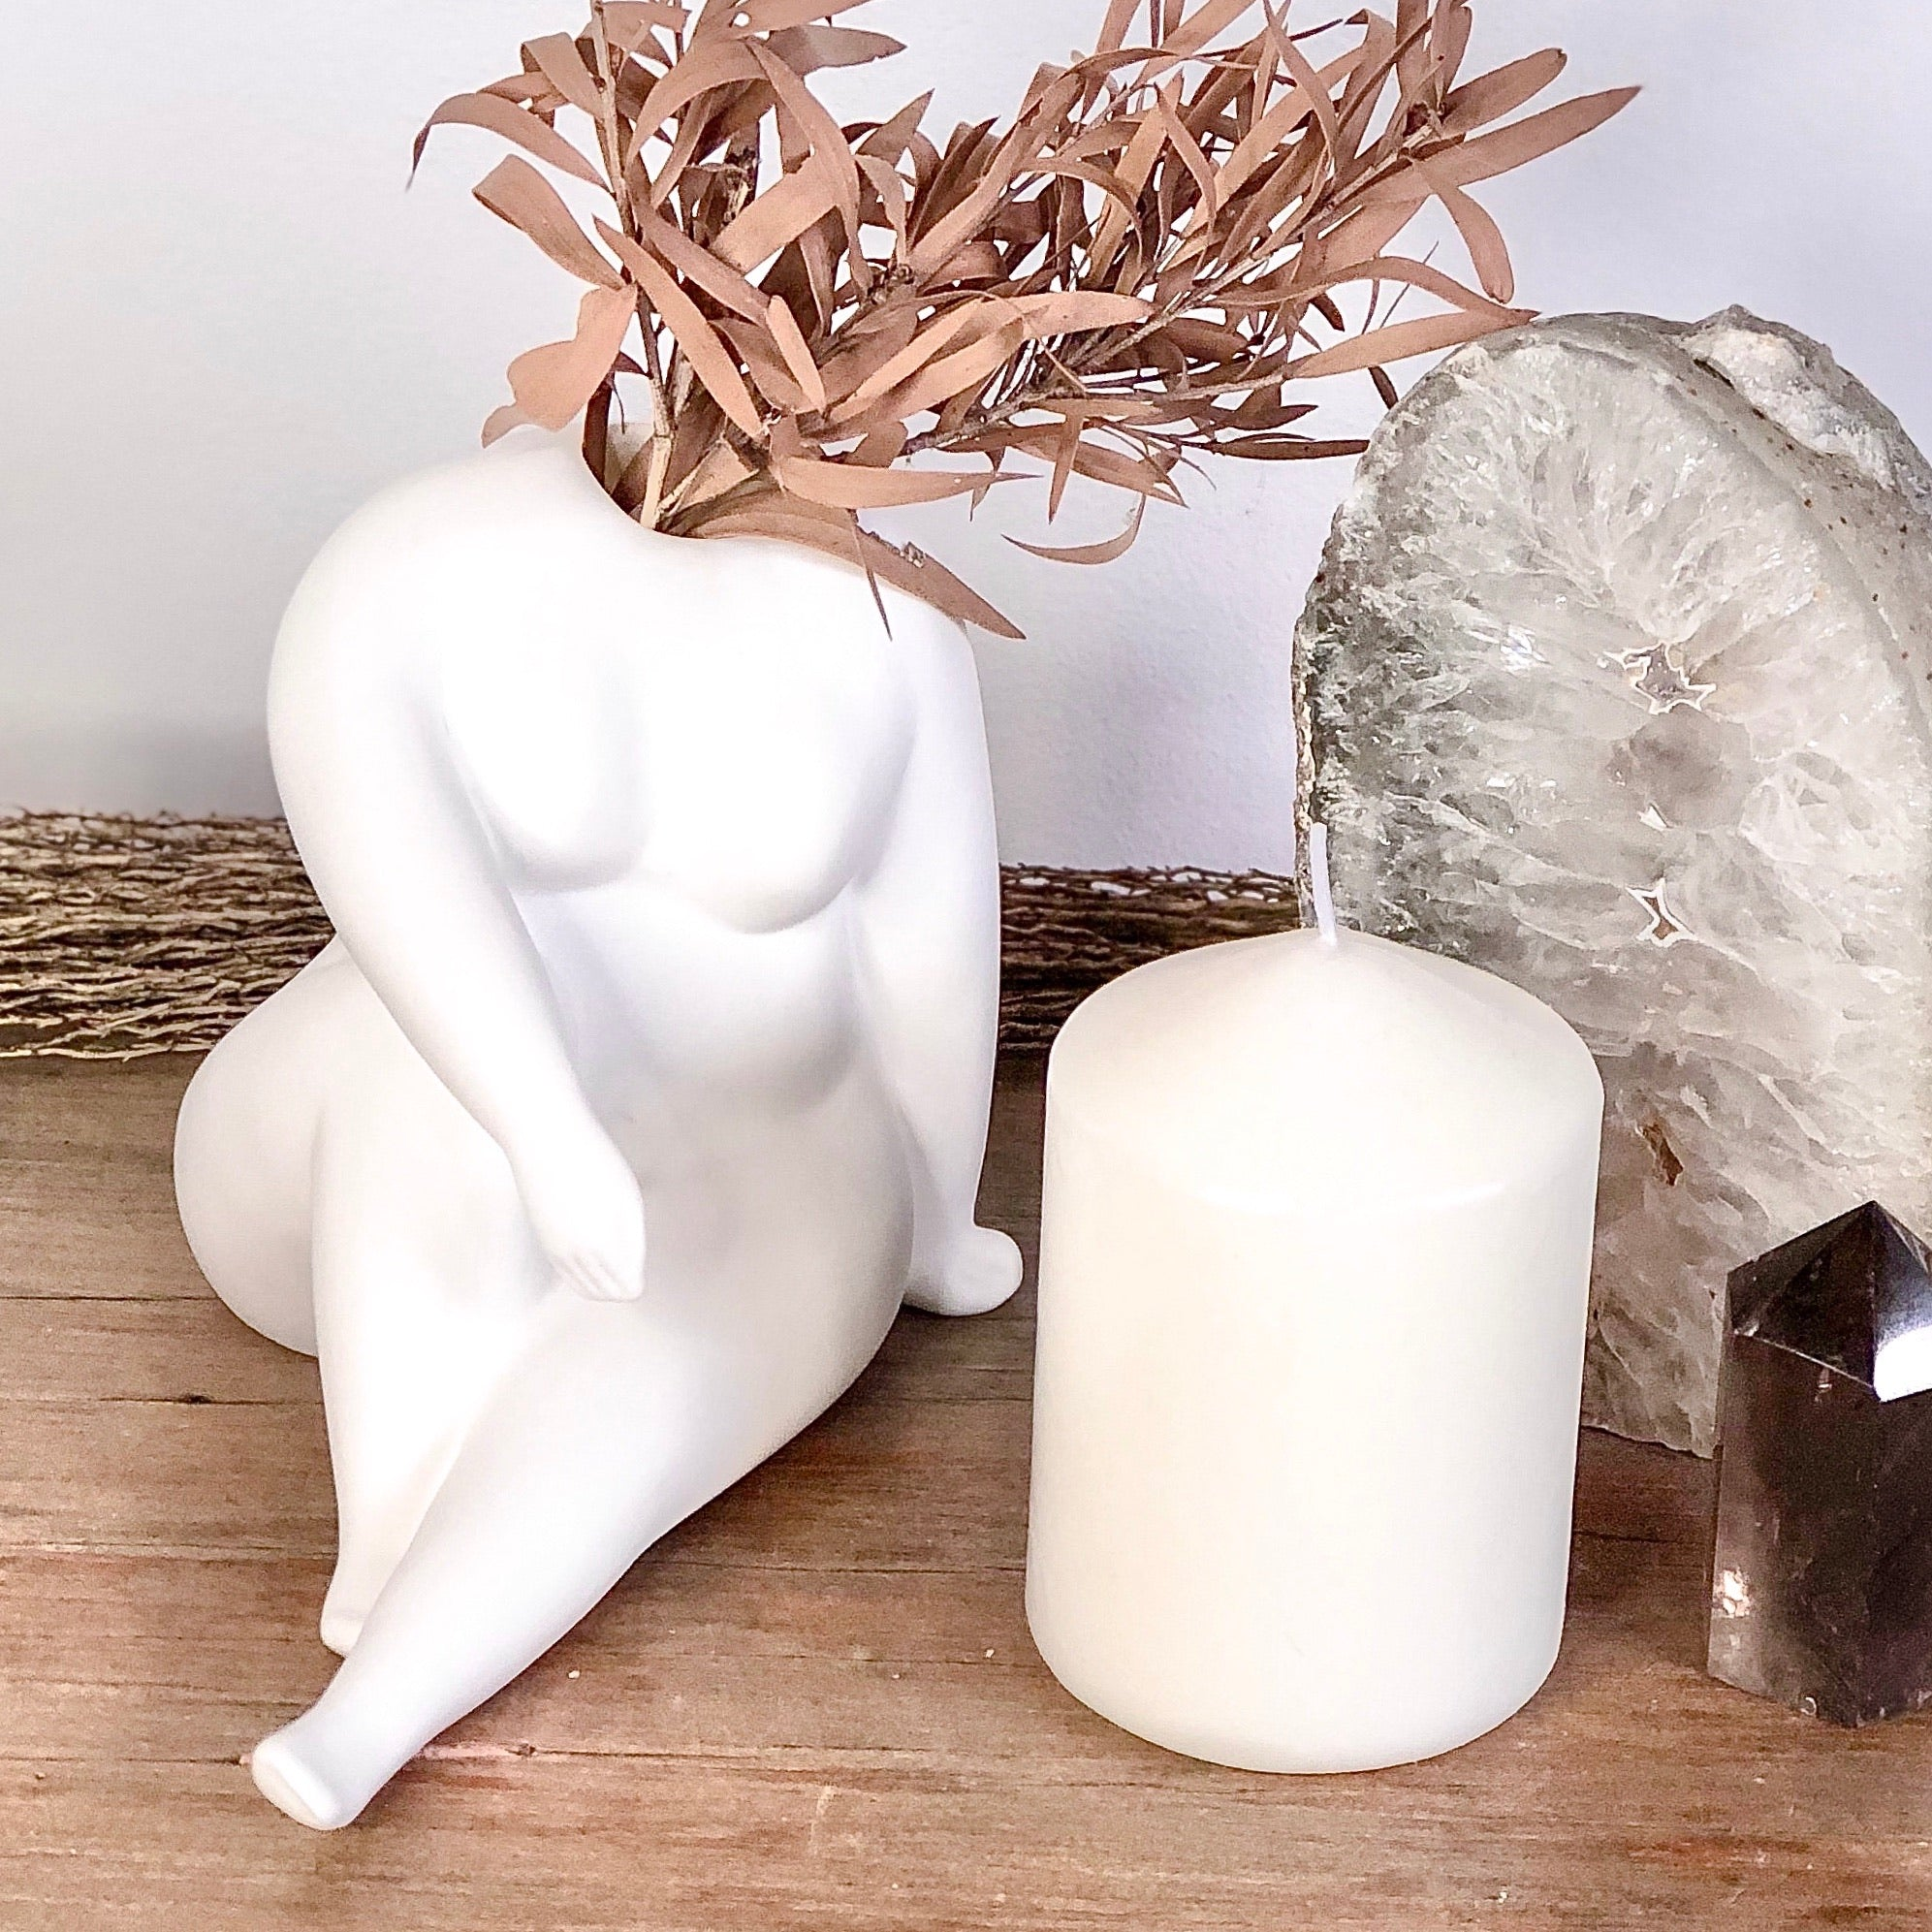 Gift, decor and crystal shop Australia: The nude reclines pottery vase